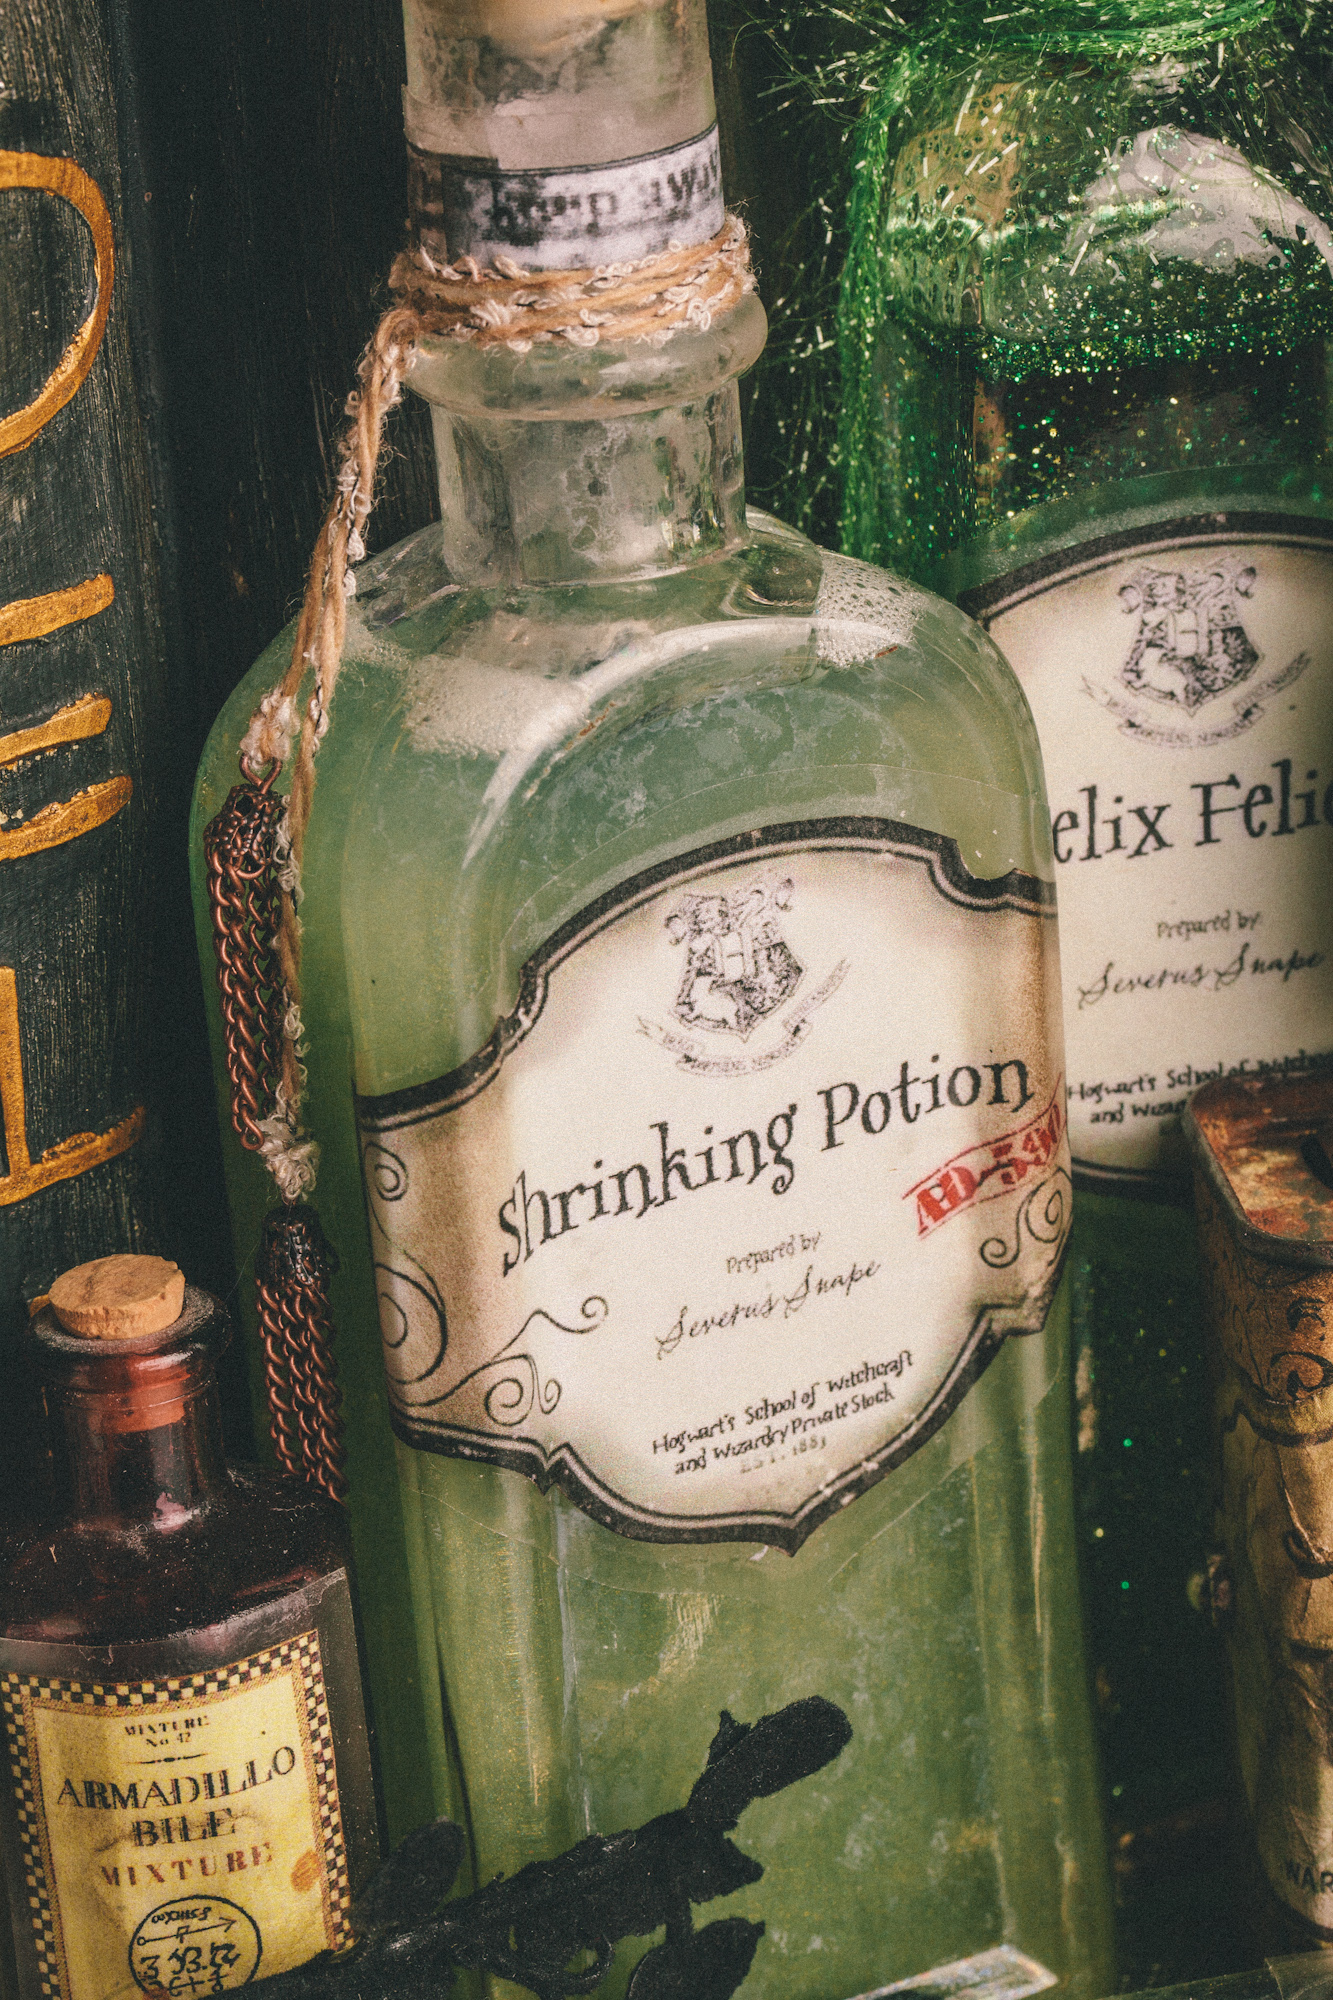 Diy Harry Potter Potions For Halloween Shrinking Potion